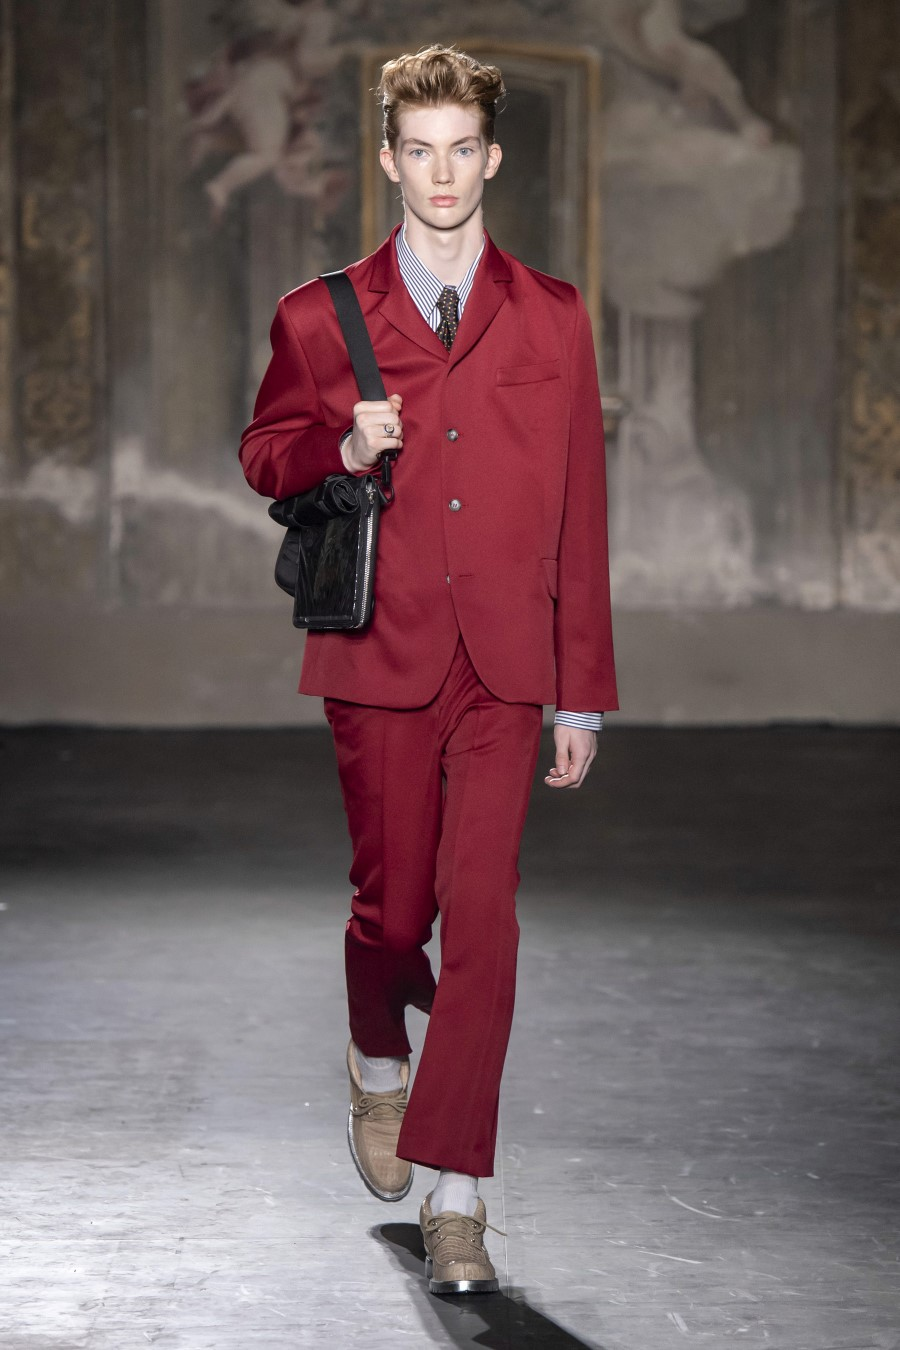 M1992 – Printemps/Été 2020 – Milan Fashion Week Homme